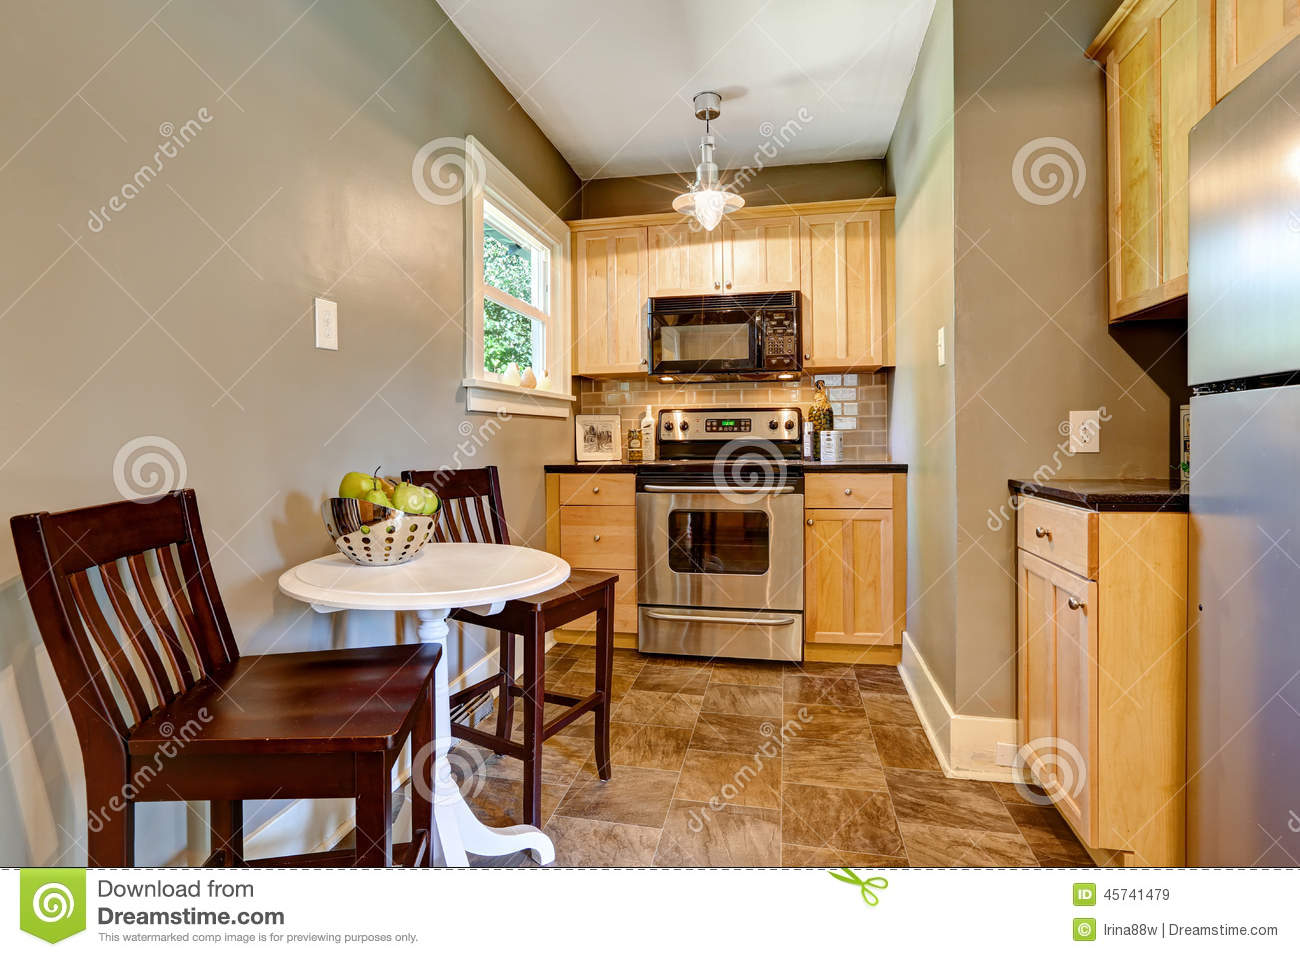 Small Kitchen Room Interior Stock Photo Image 45741479